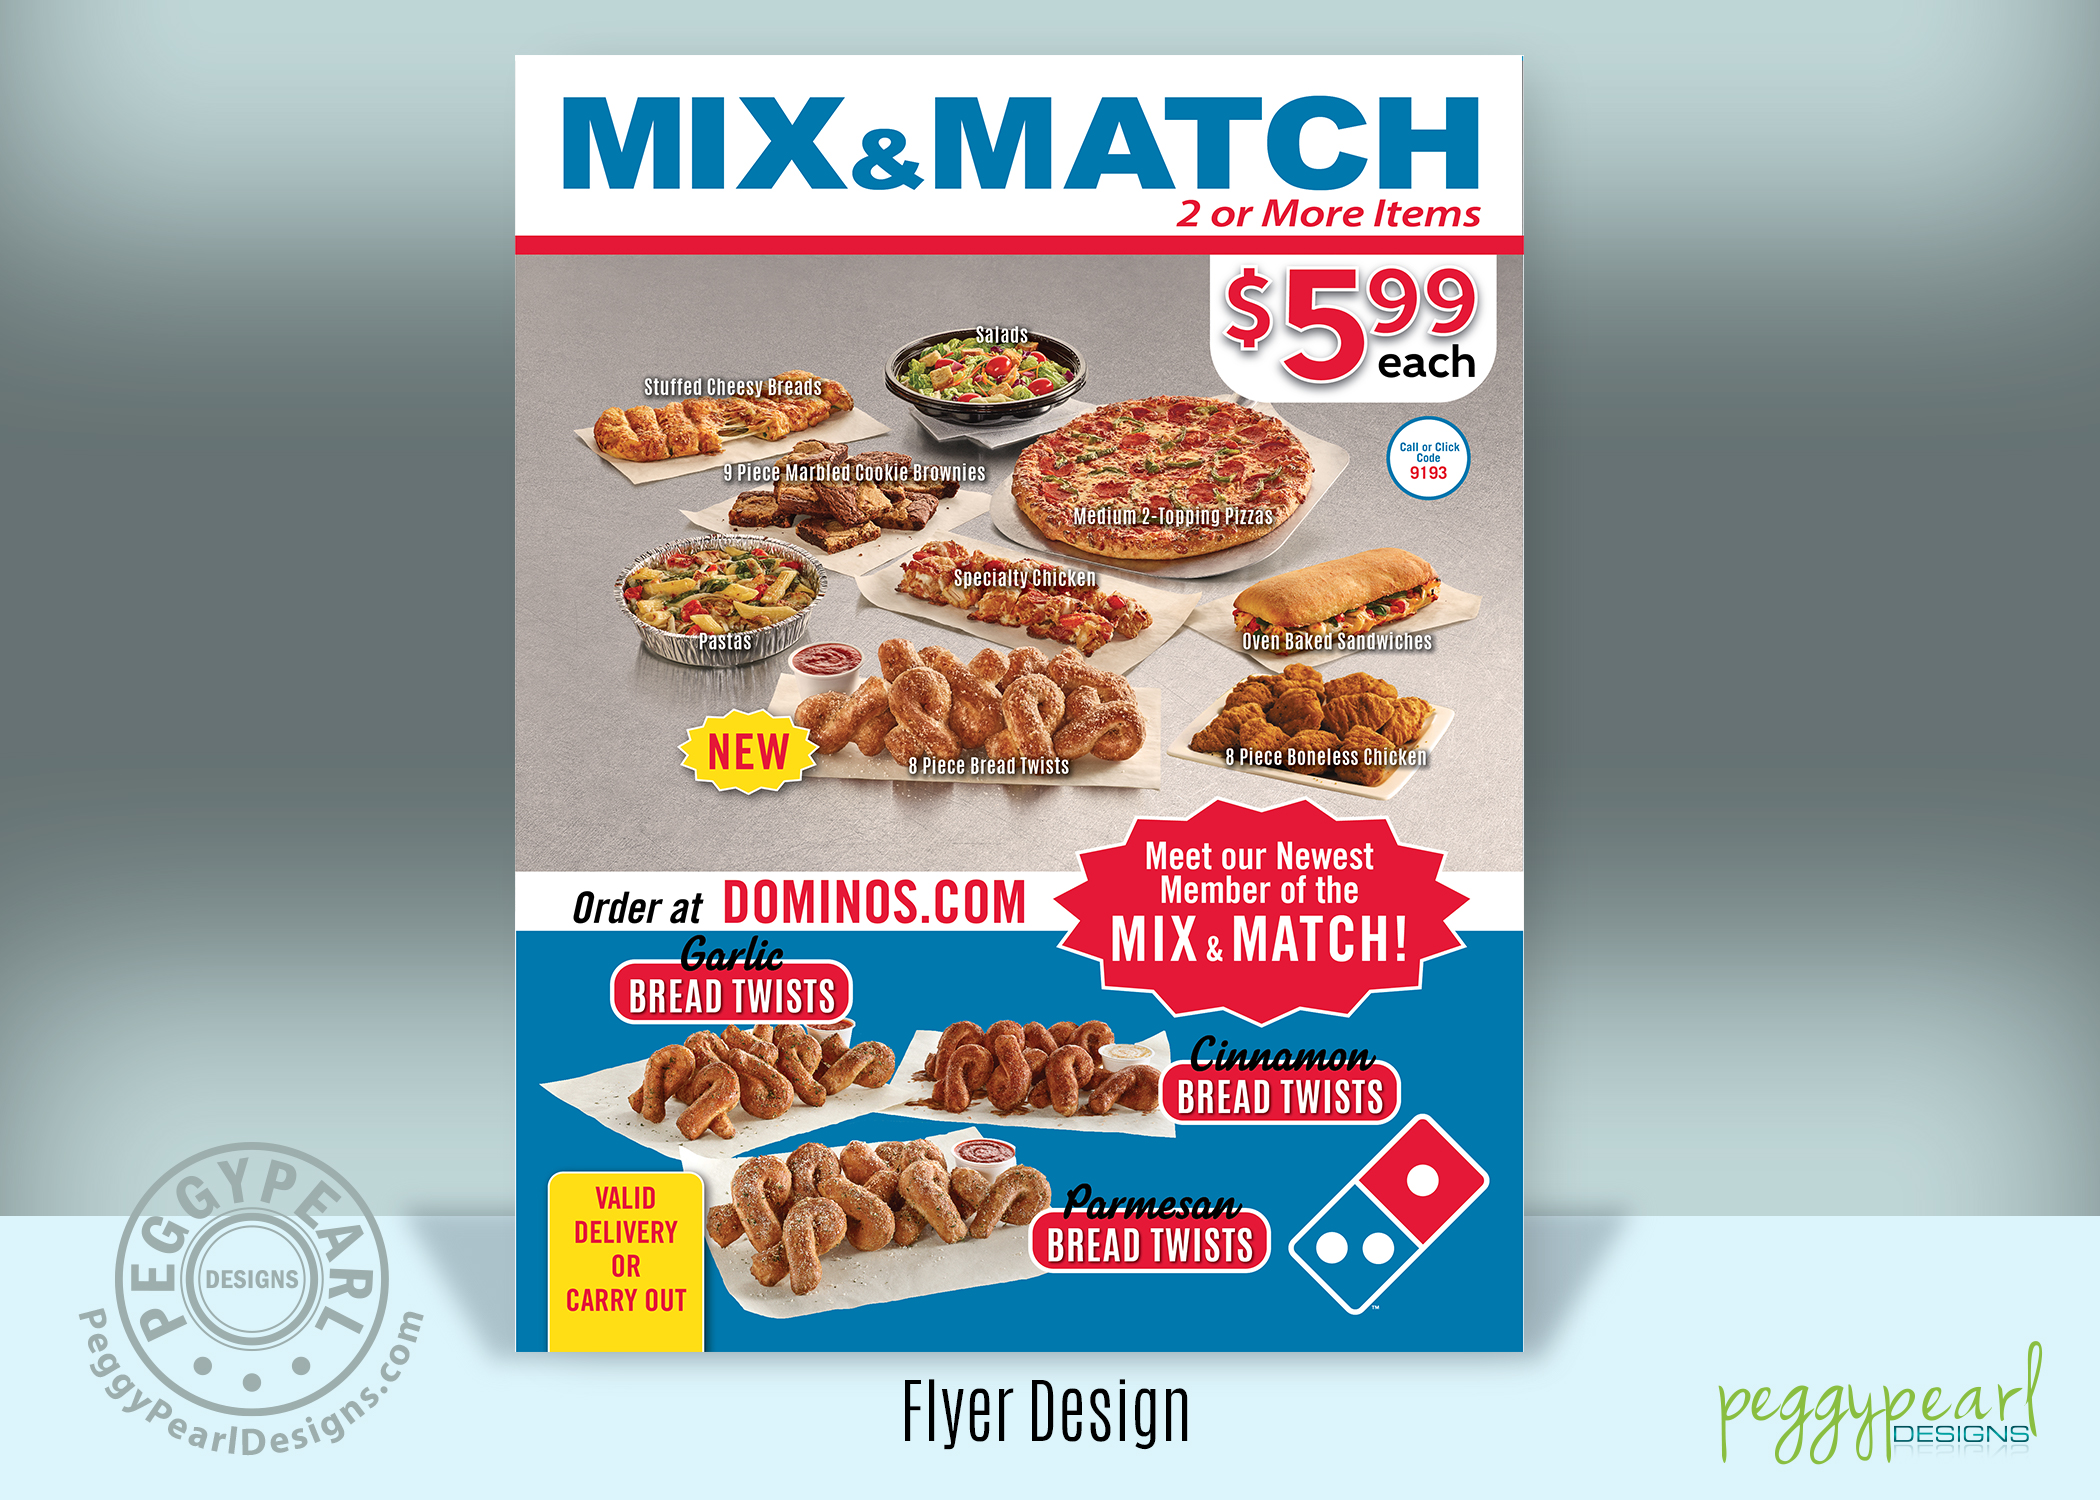 Domino's Flyer Mix and Match